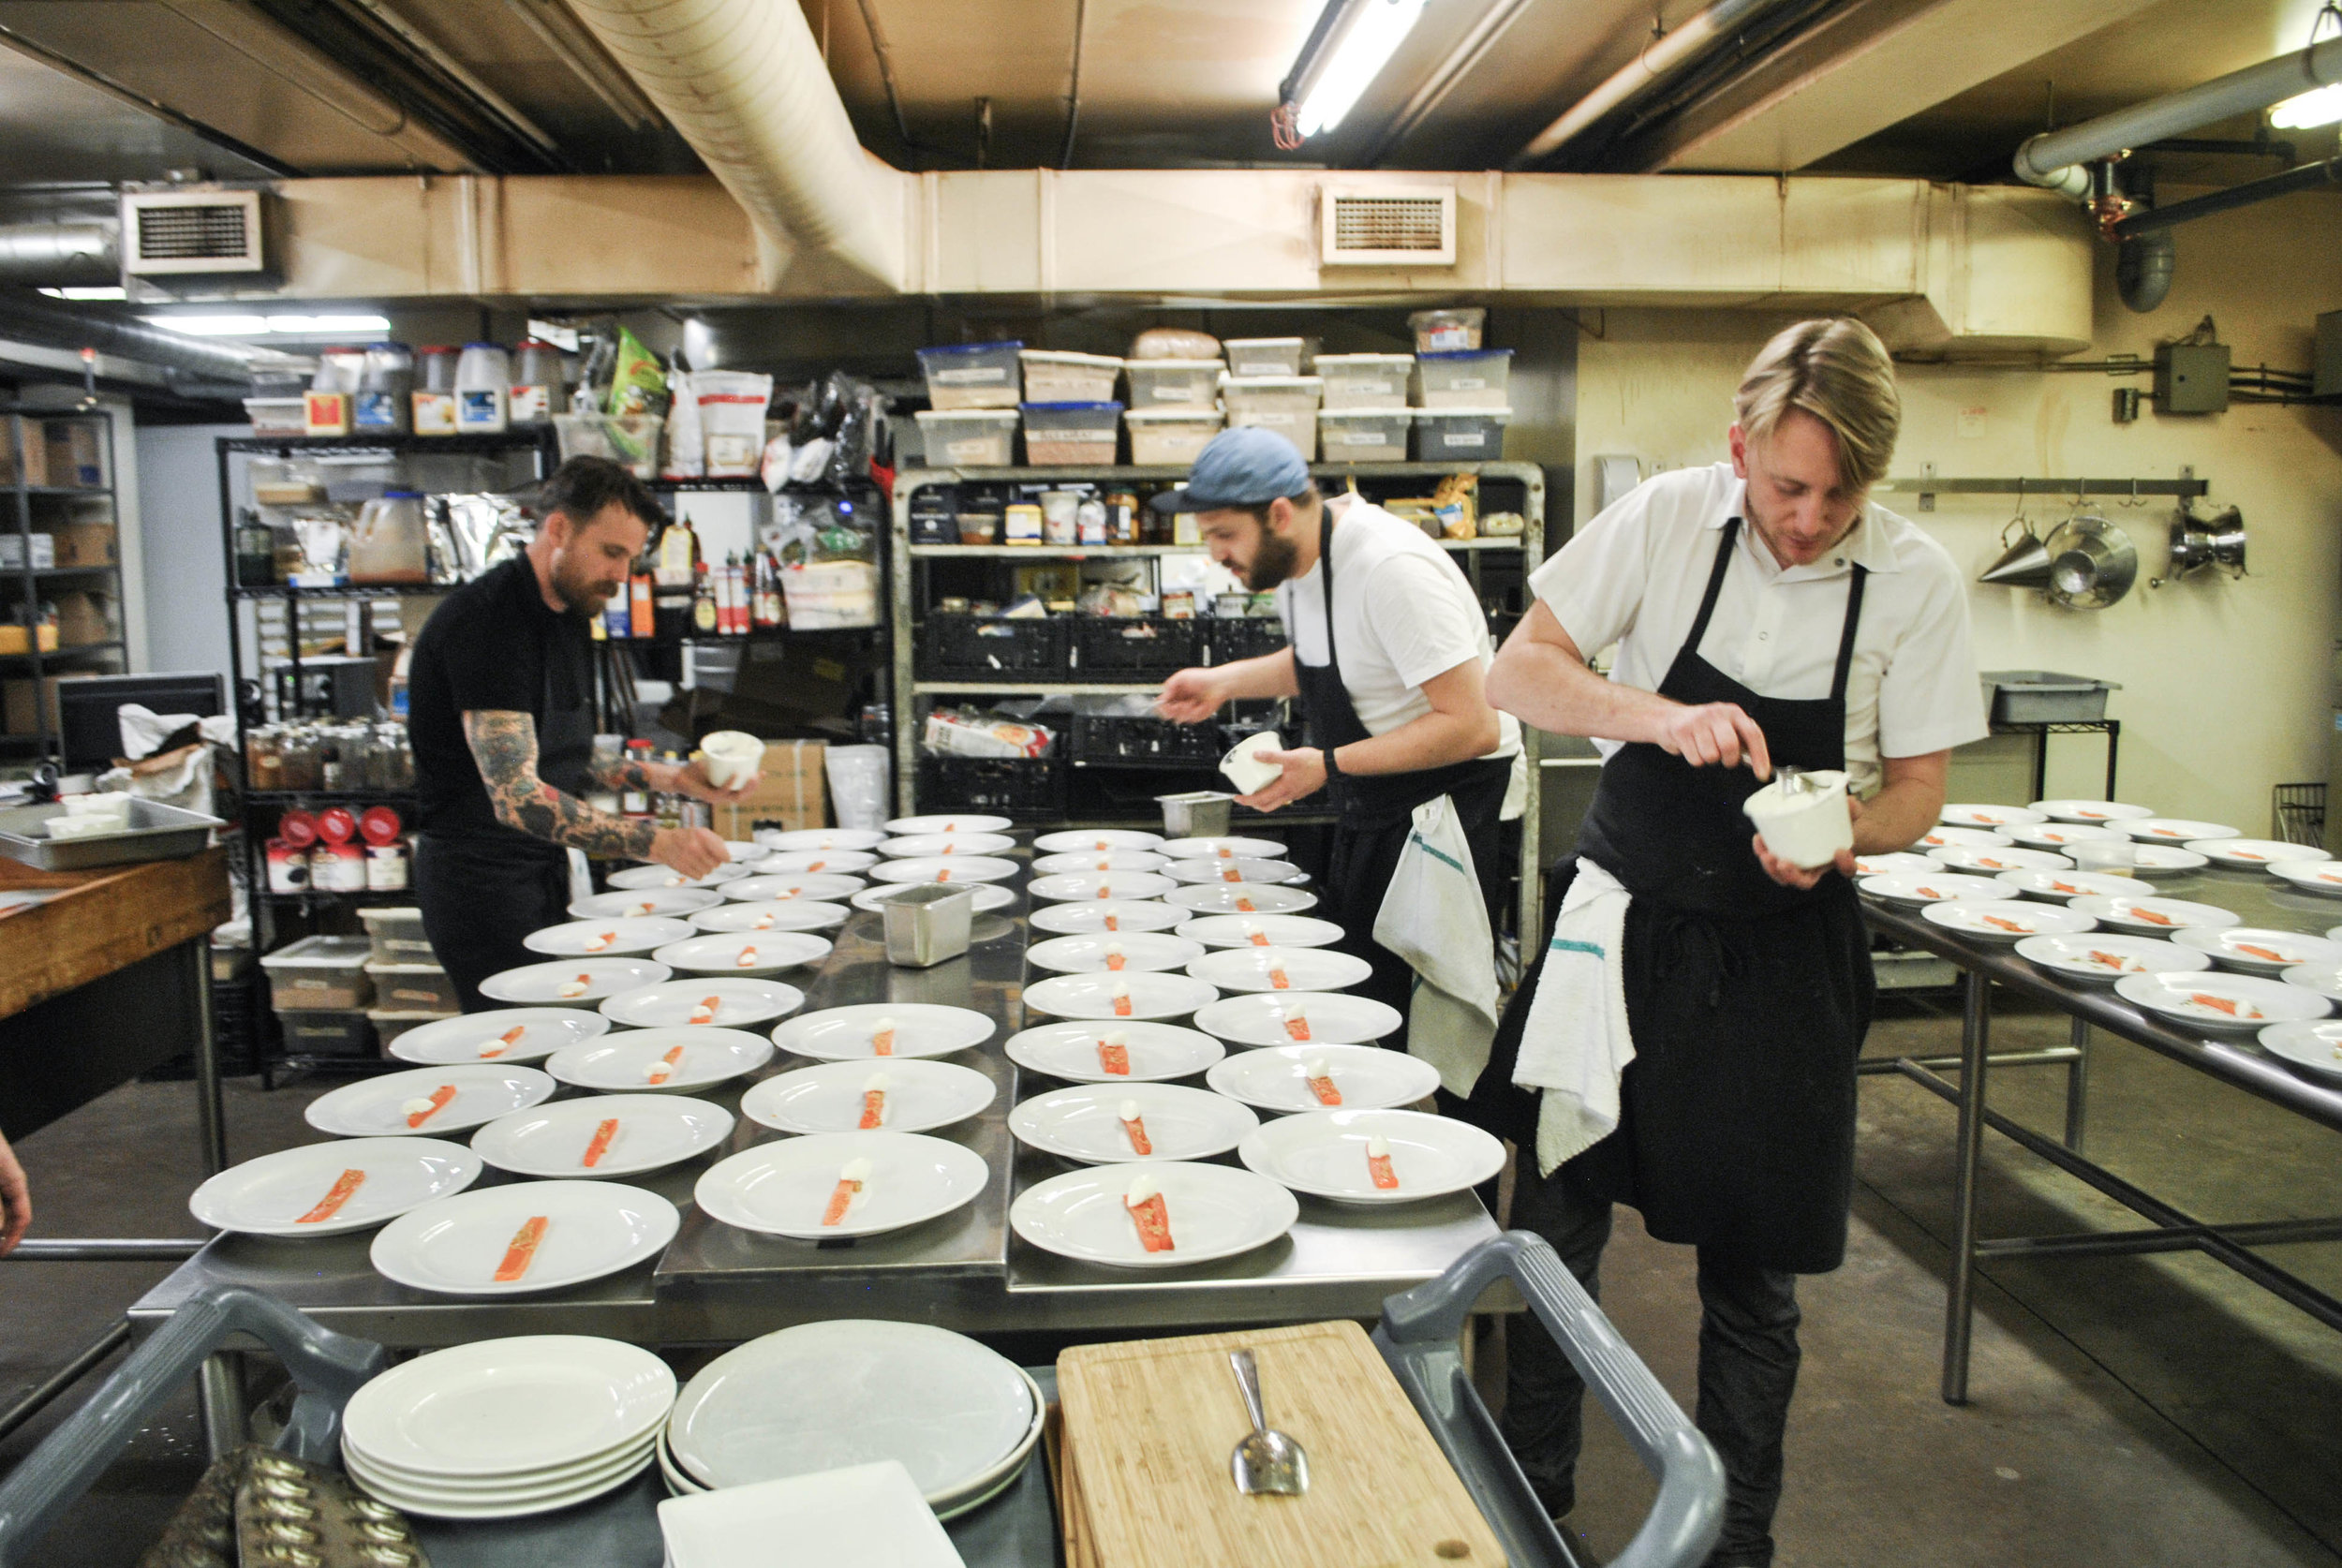 The Ayden team plating the first course. Pictured: Dale McKay, Benet Hunt and Jesse Zuber